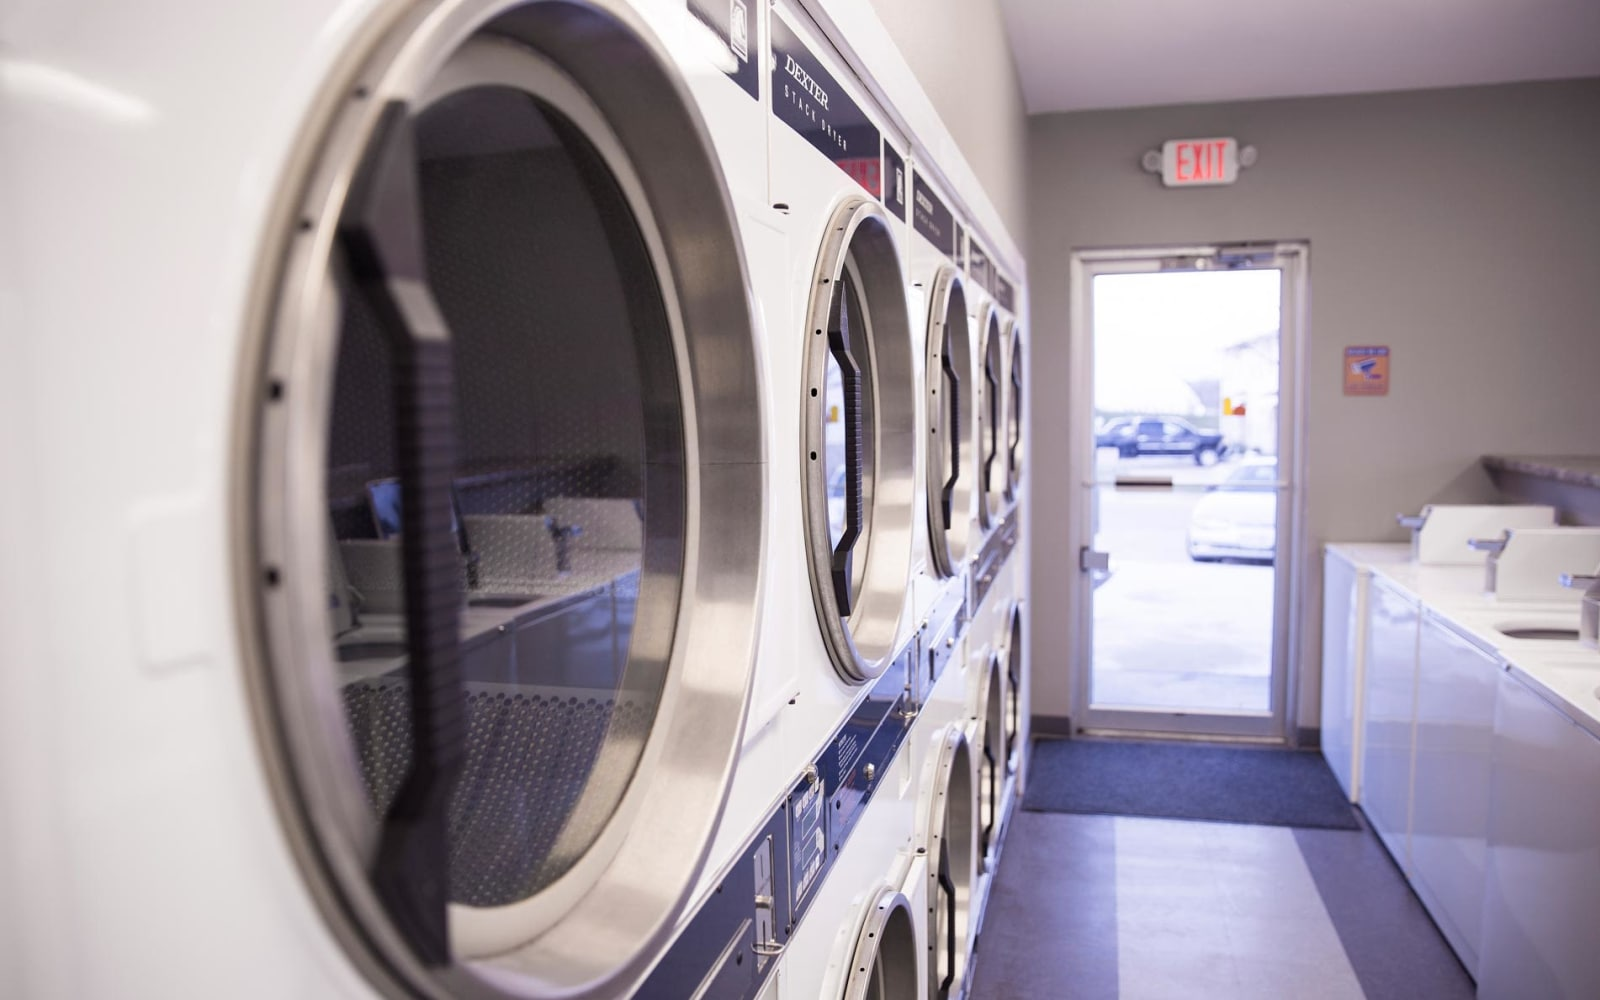 Dryers in the laundry room at Campus View & Kirkwood Court in Cedar Rapids, Iowa